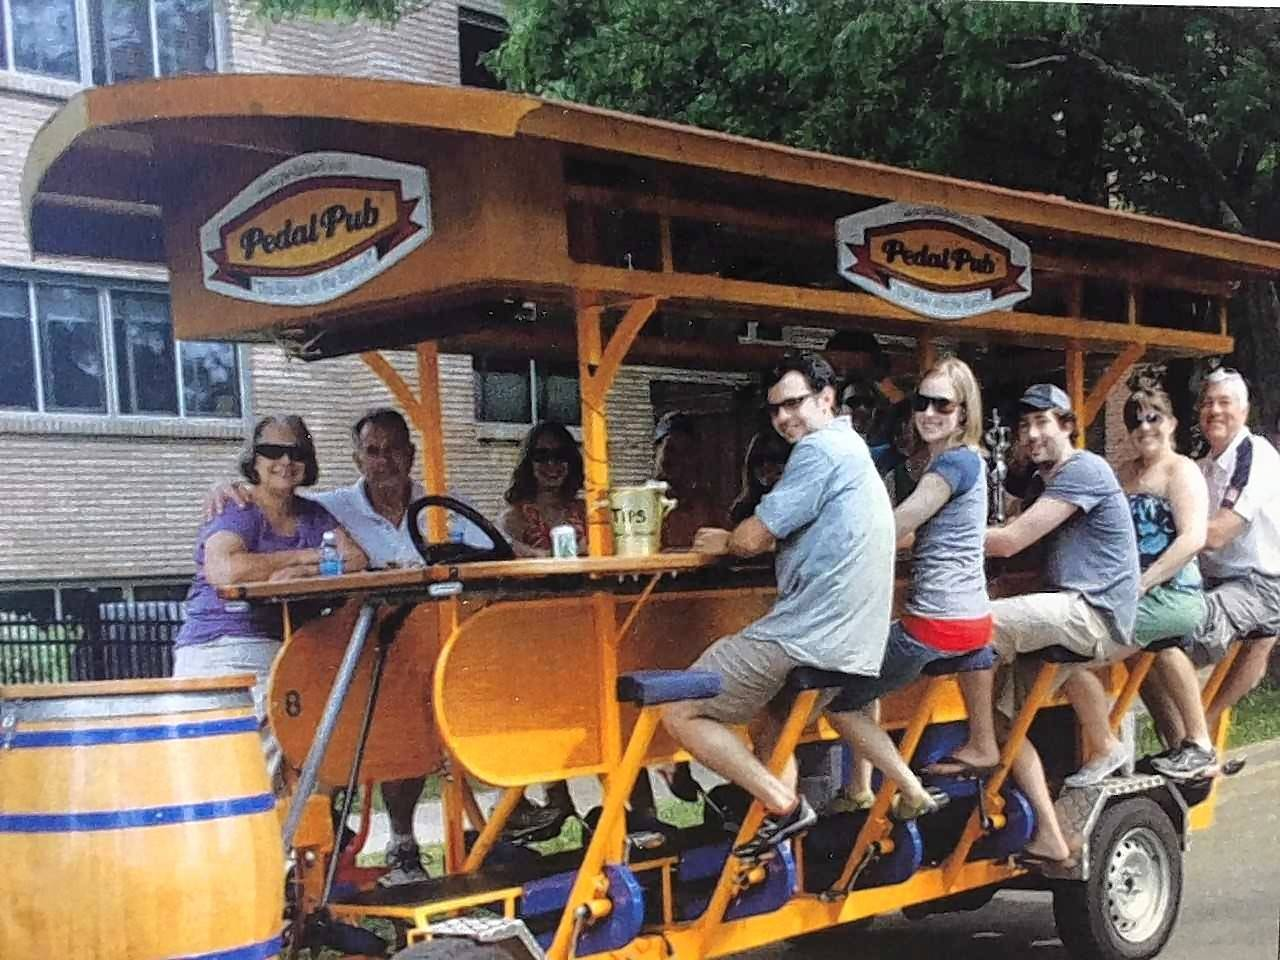 Naperville resident Monica Bennett, owner of O'Brien's Pedal Pub, wants to begin offering tours of downtown Naperville on a large multiperson bicycle, and she is requesting the ability to allow riders to bring their own beer. The city's liquor commission is considering the request and plans to discuss it again next month.